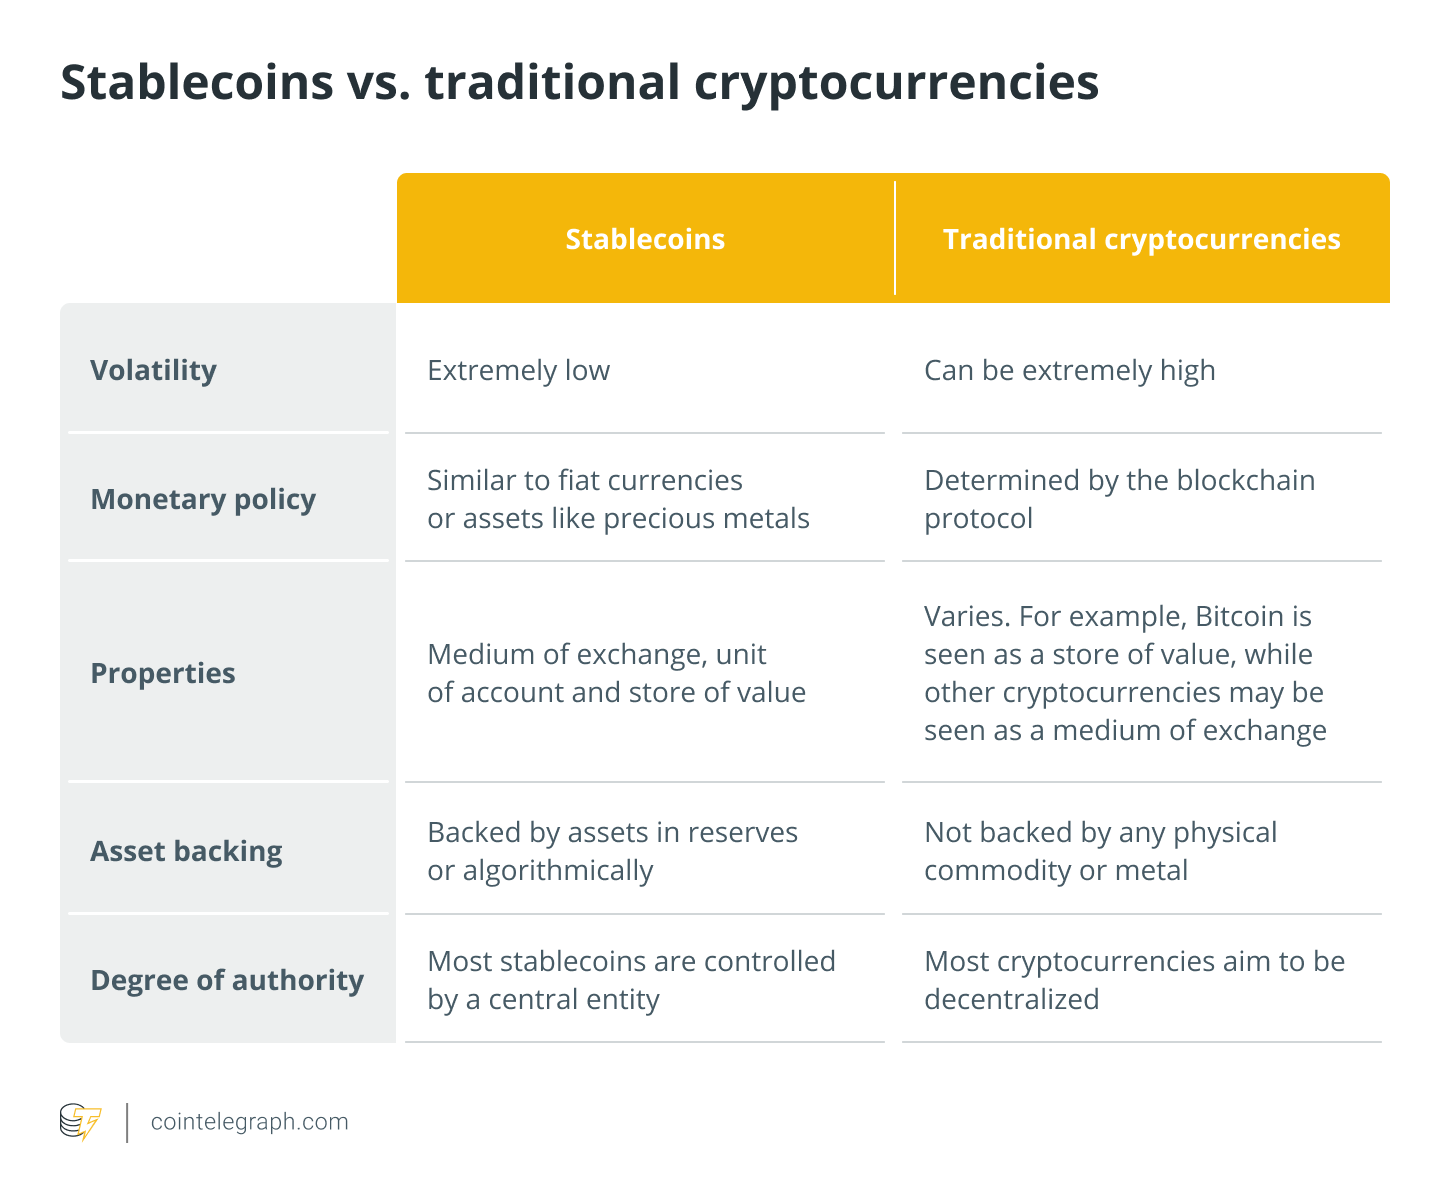 Stablecoins vs. traditional cryptocurrencies